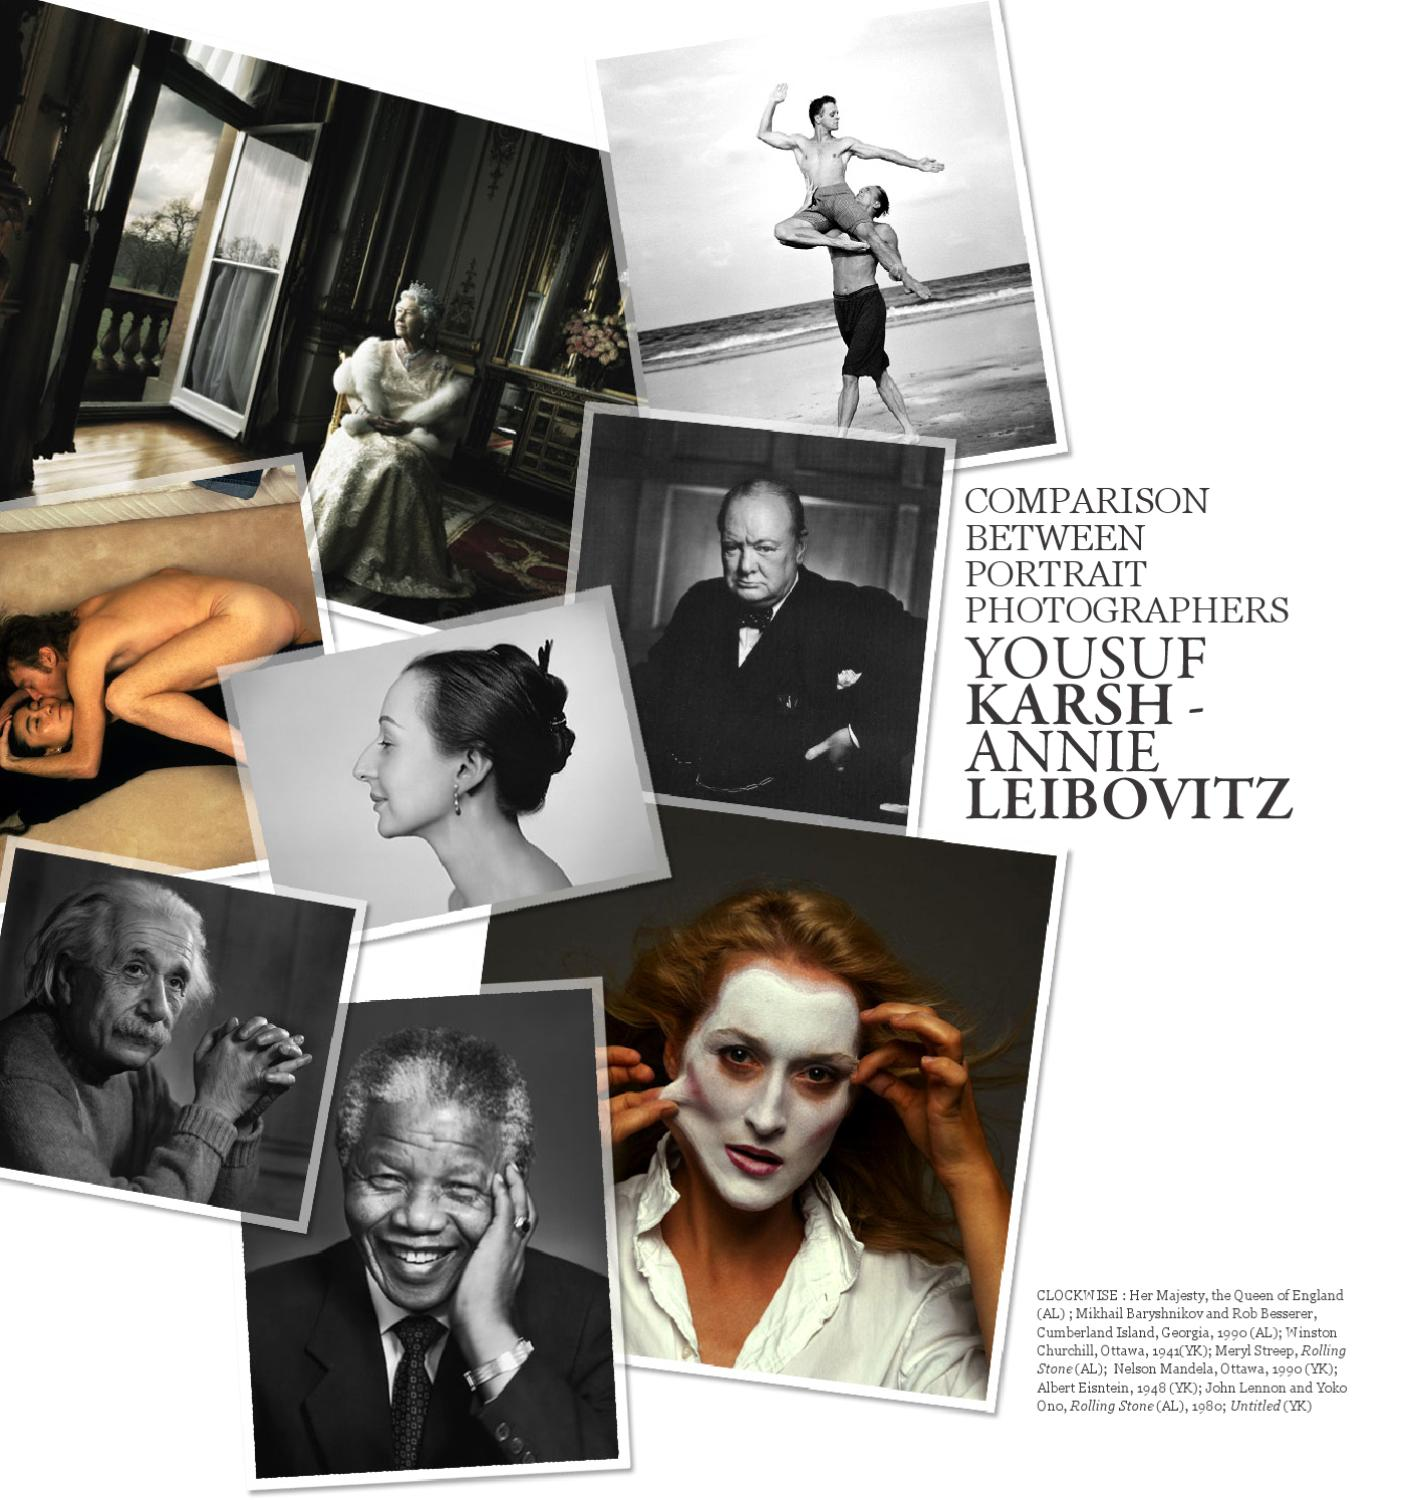 Comparison Between Portrait Photographers Yousuf Karsh And Annie Leibovitz By Edi Go